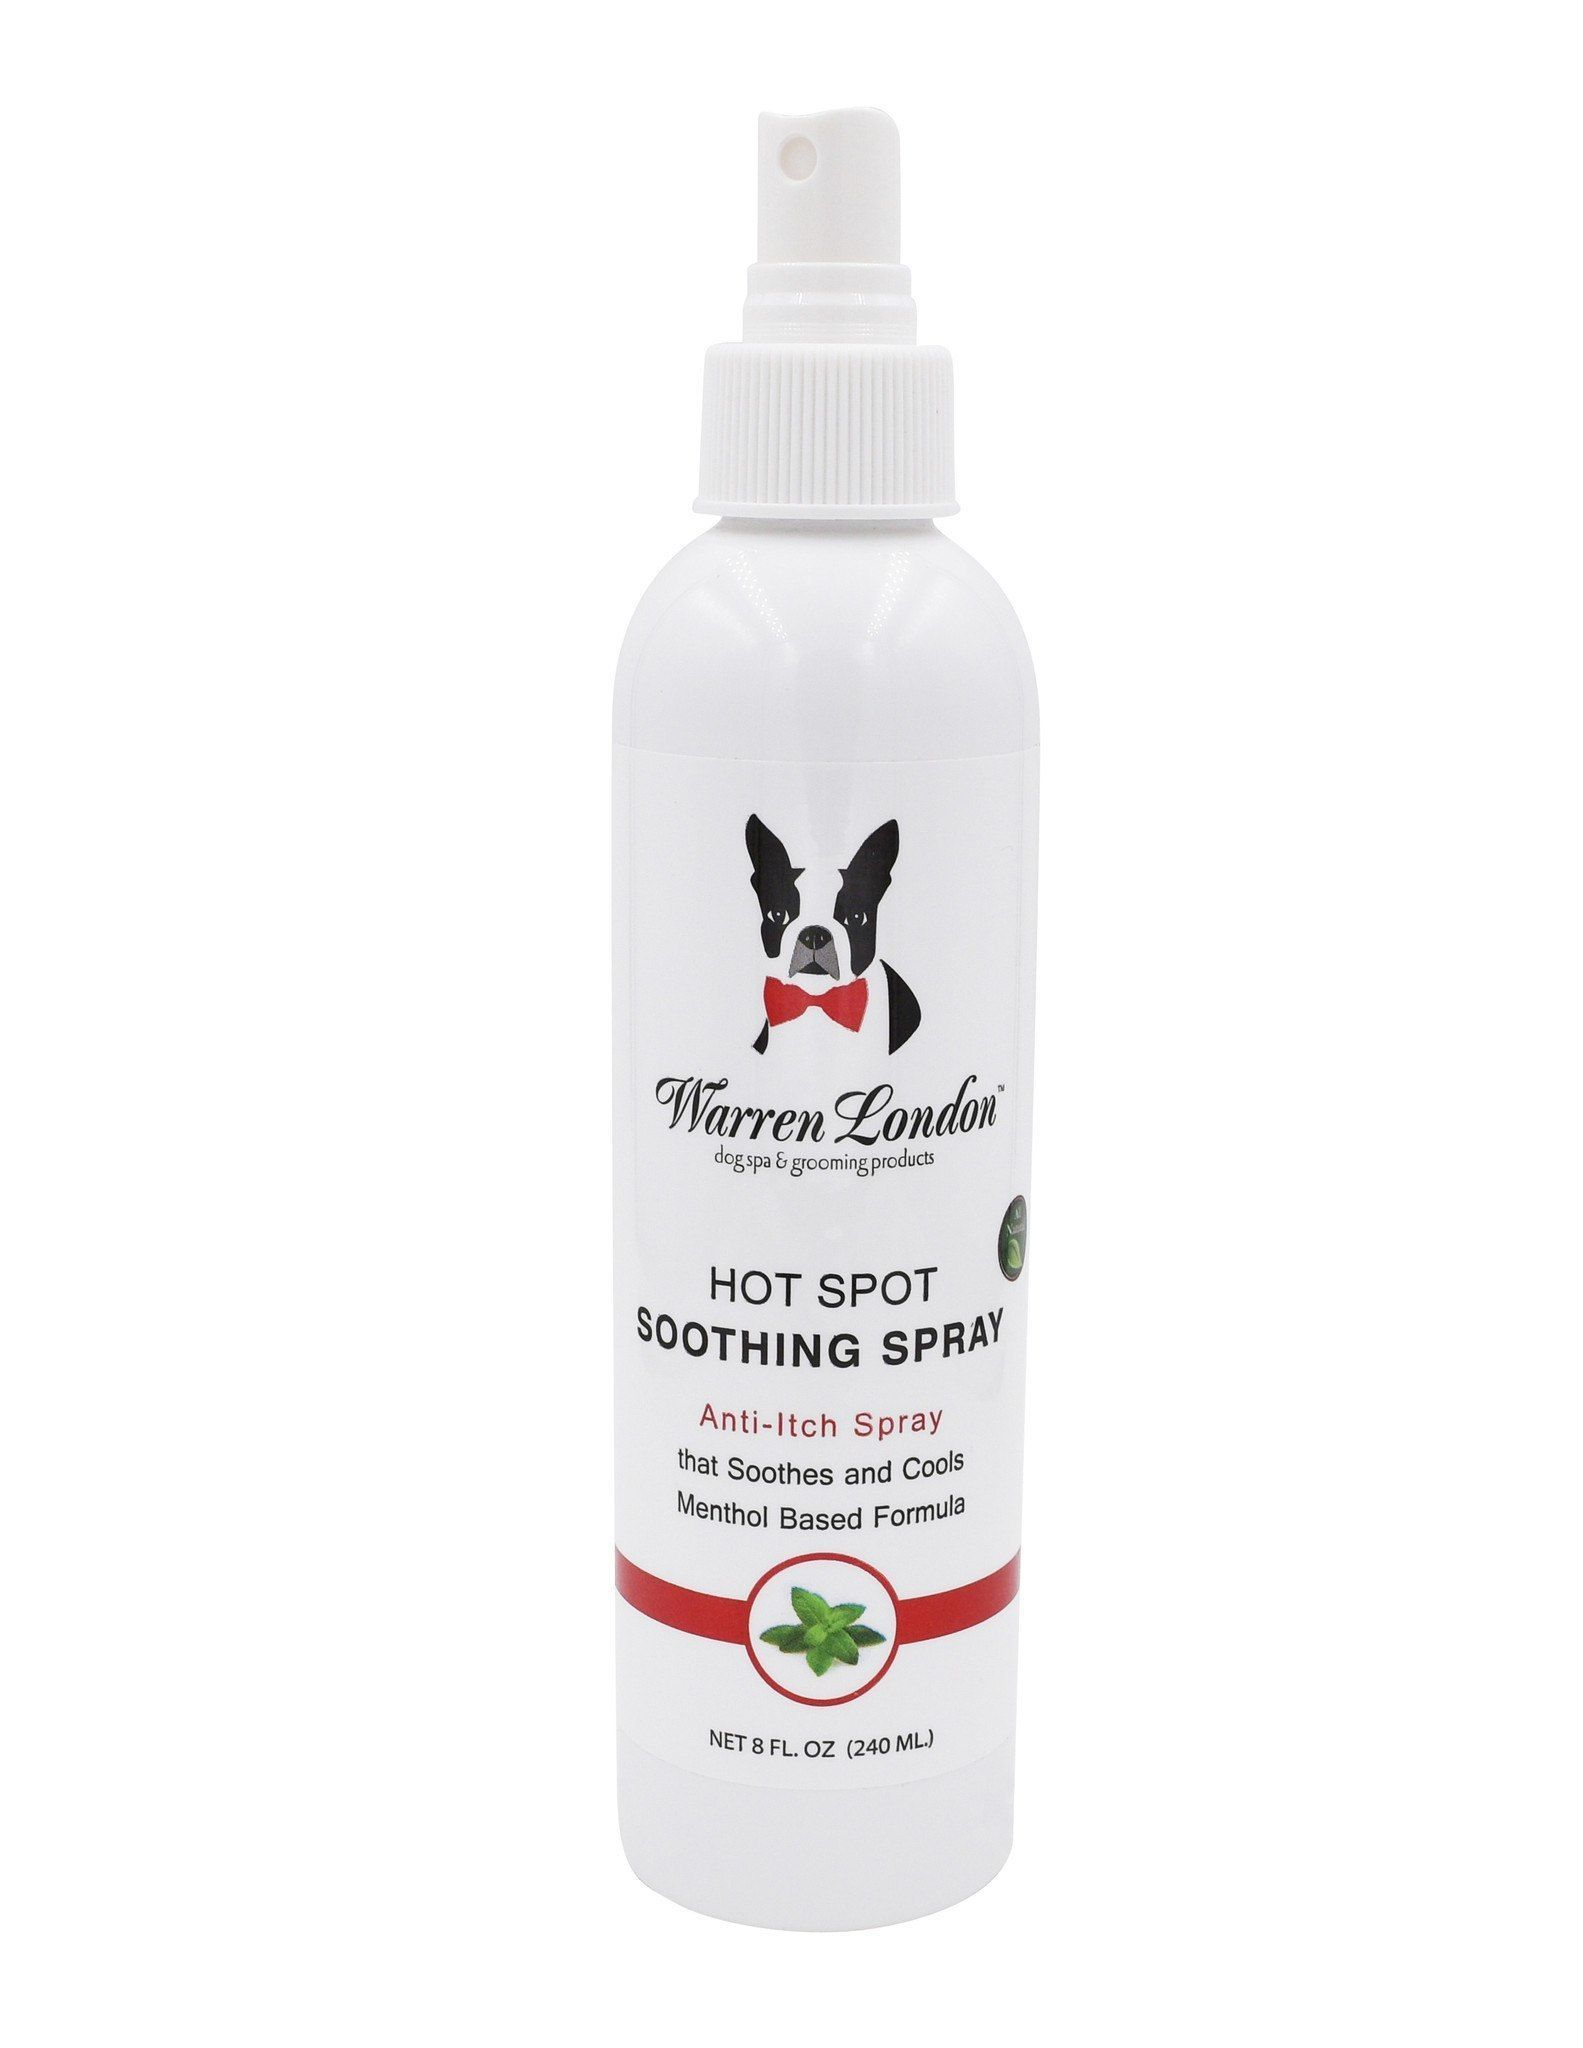 Hot Spot Soothing Spray